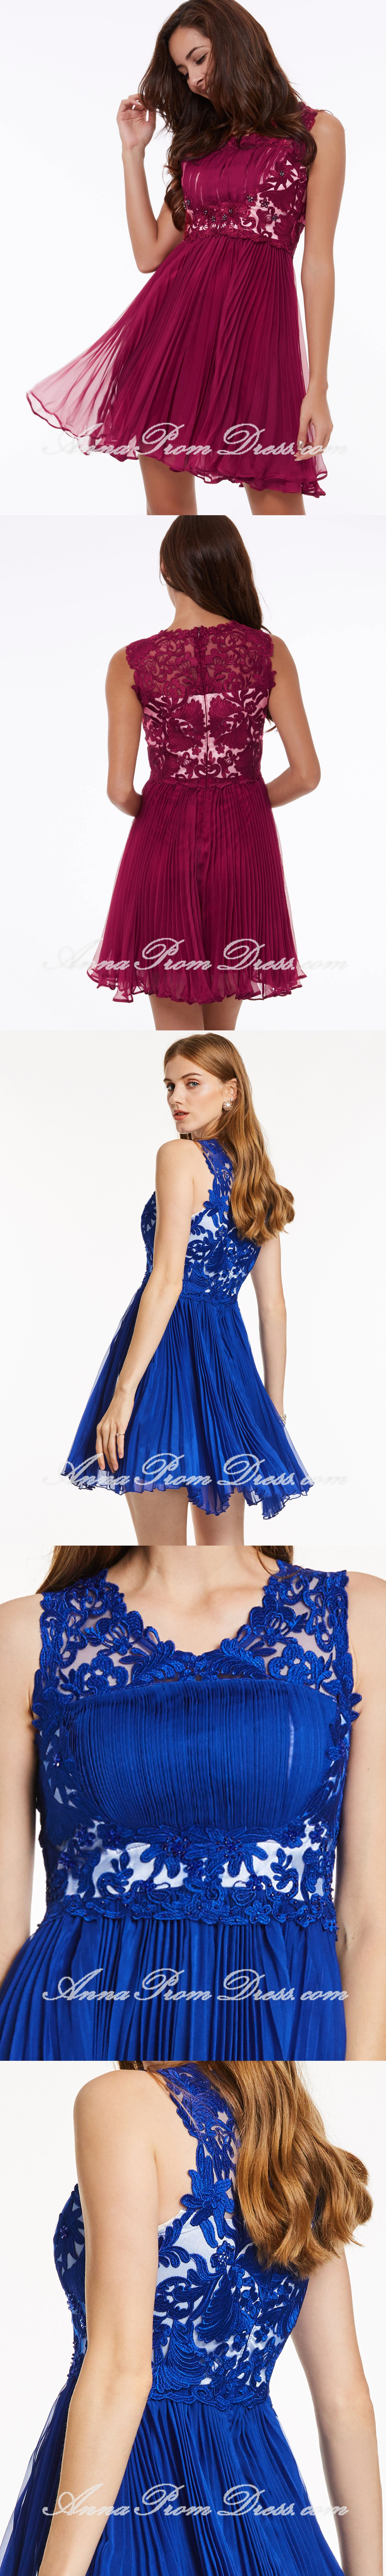 Sexy homecoming dress vneck aline lace royal blue short prom dress